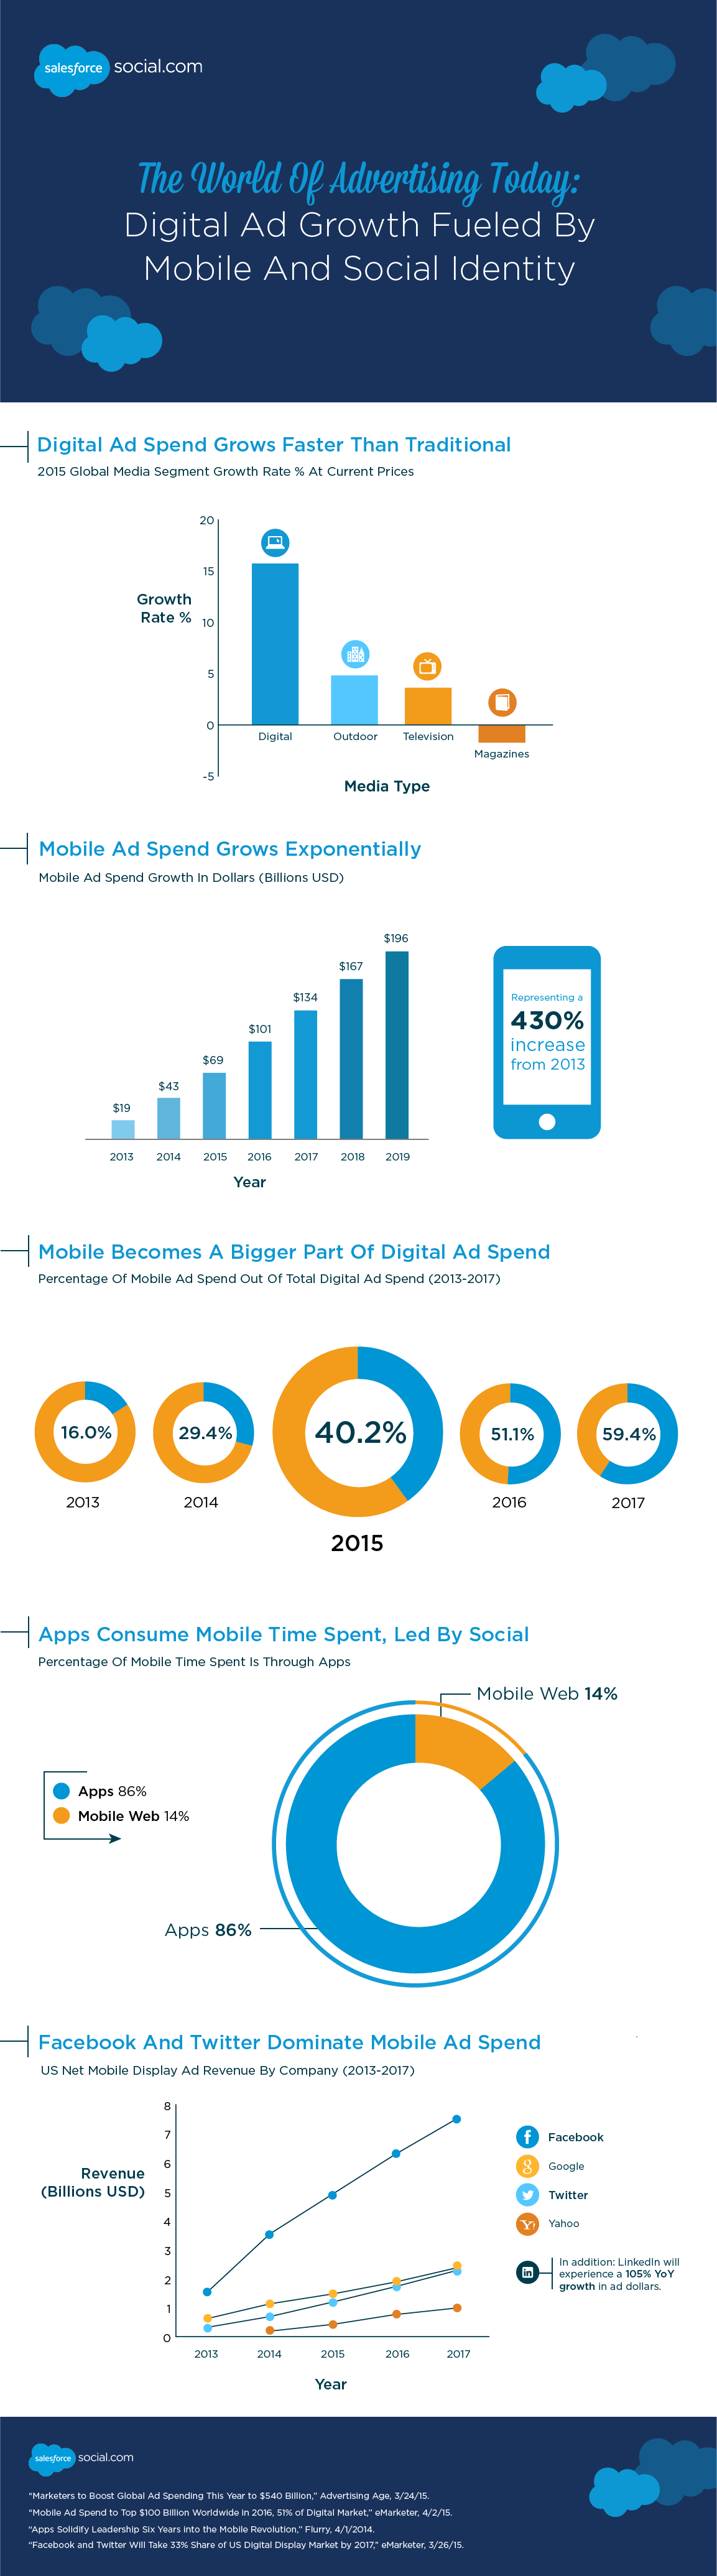 The World of Advertising Today: Digital Ad Growth Fueled by Mobile and Social Identity - #infographic